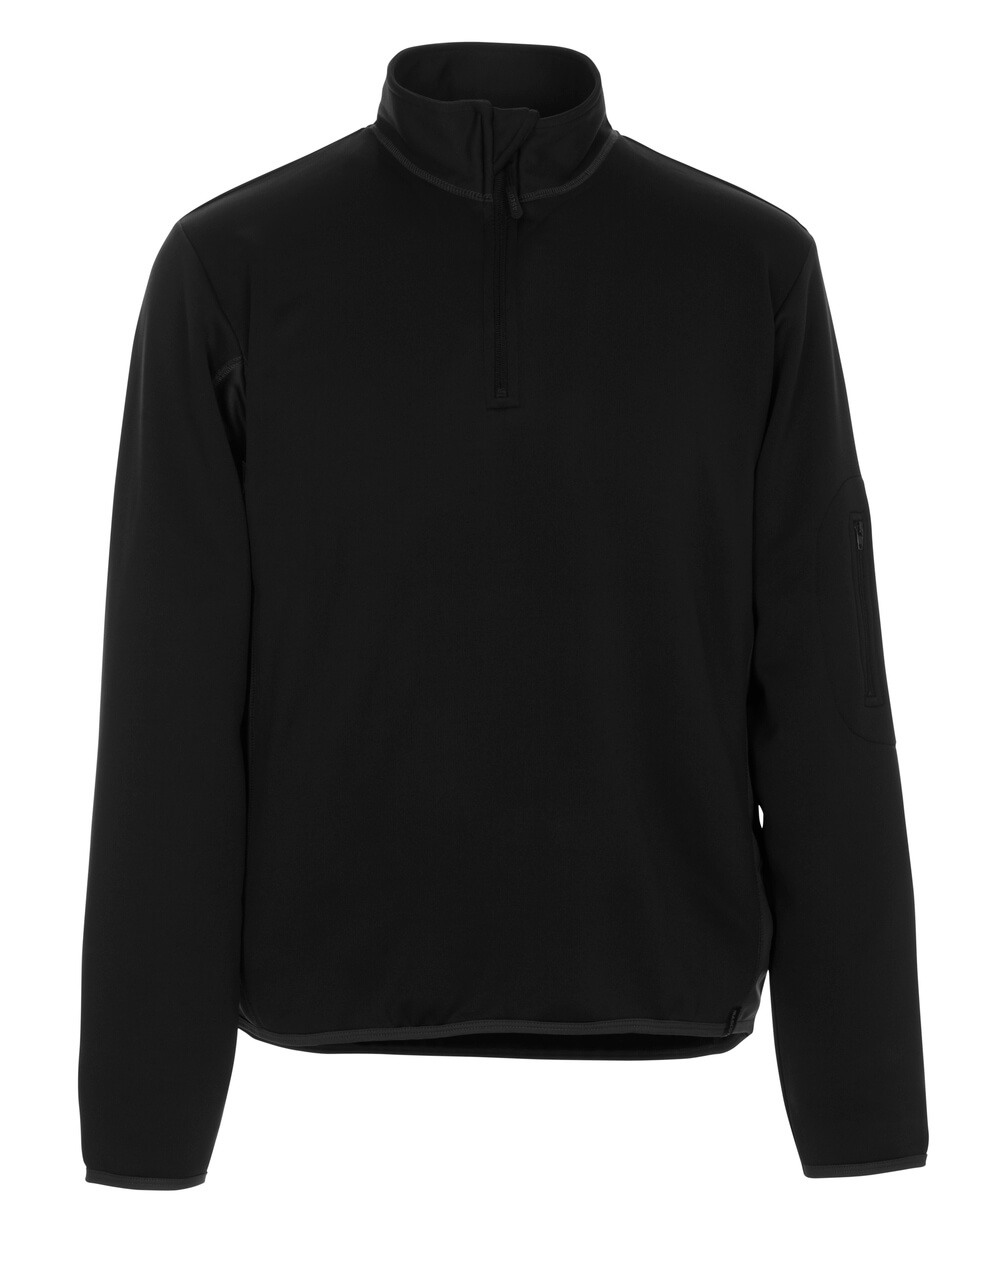 50068-828-0918 Polo Sweatshirt - black/dark anthracite